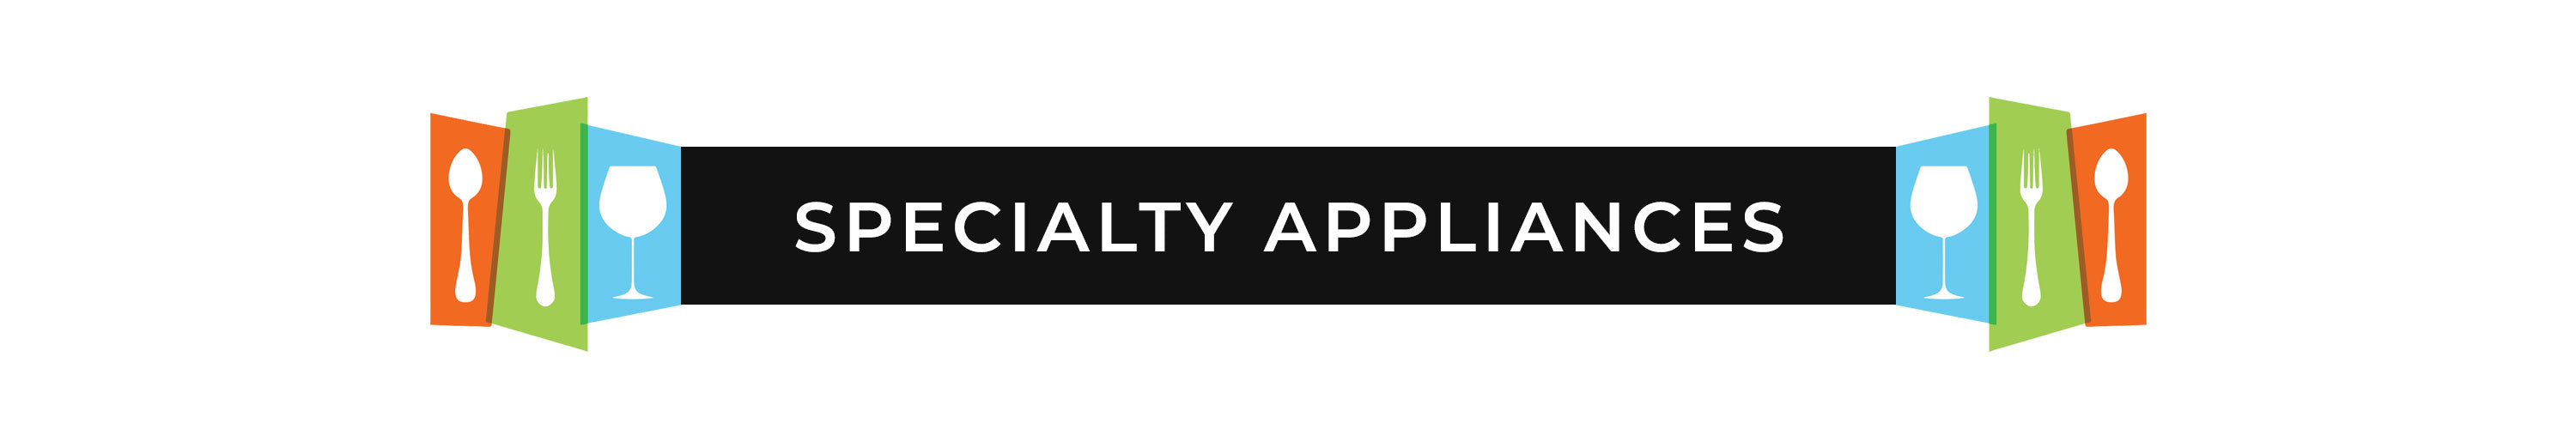 specialty-appliances-banner